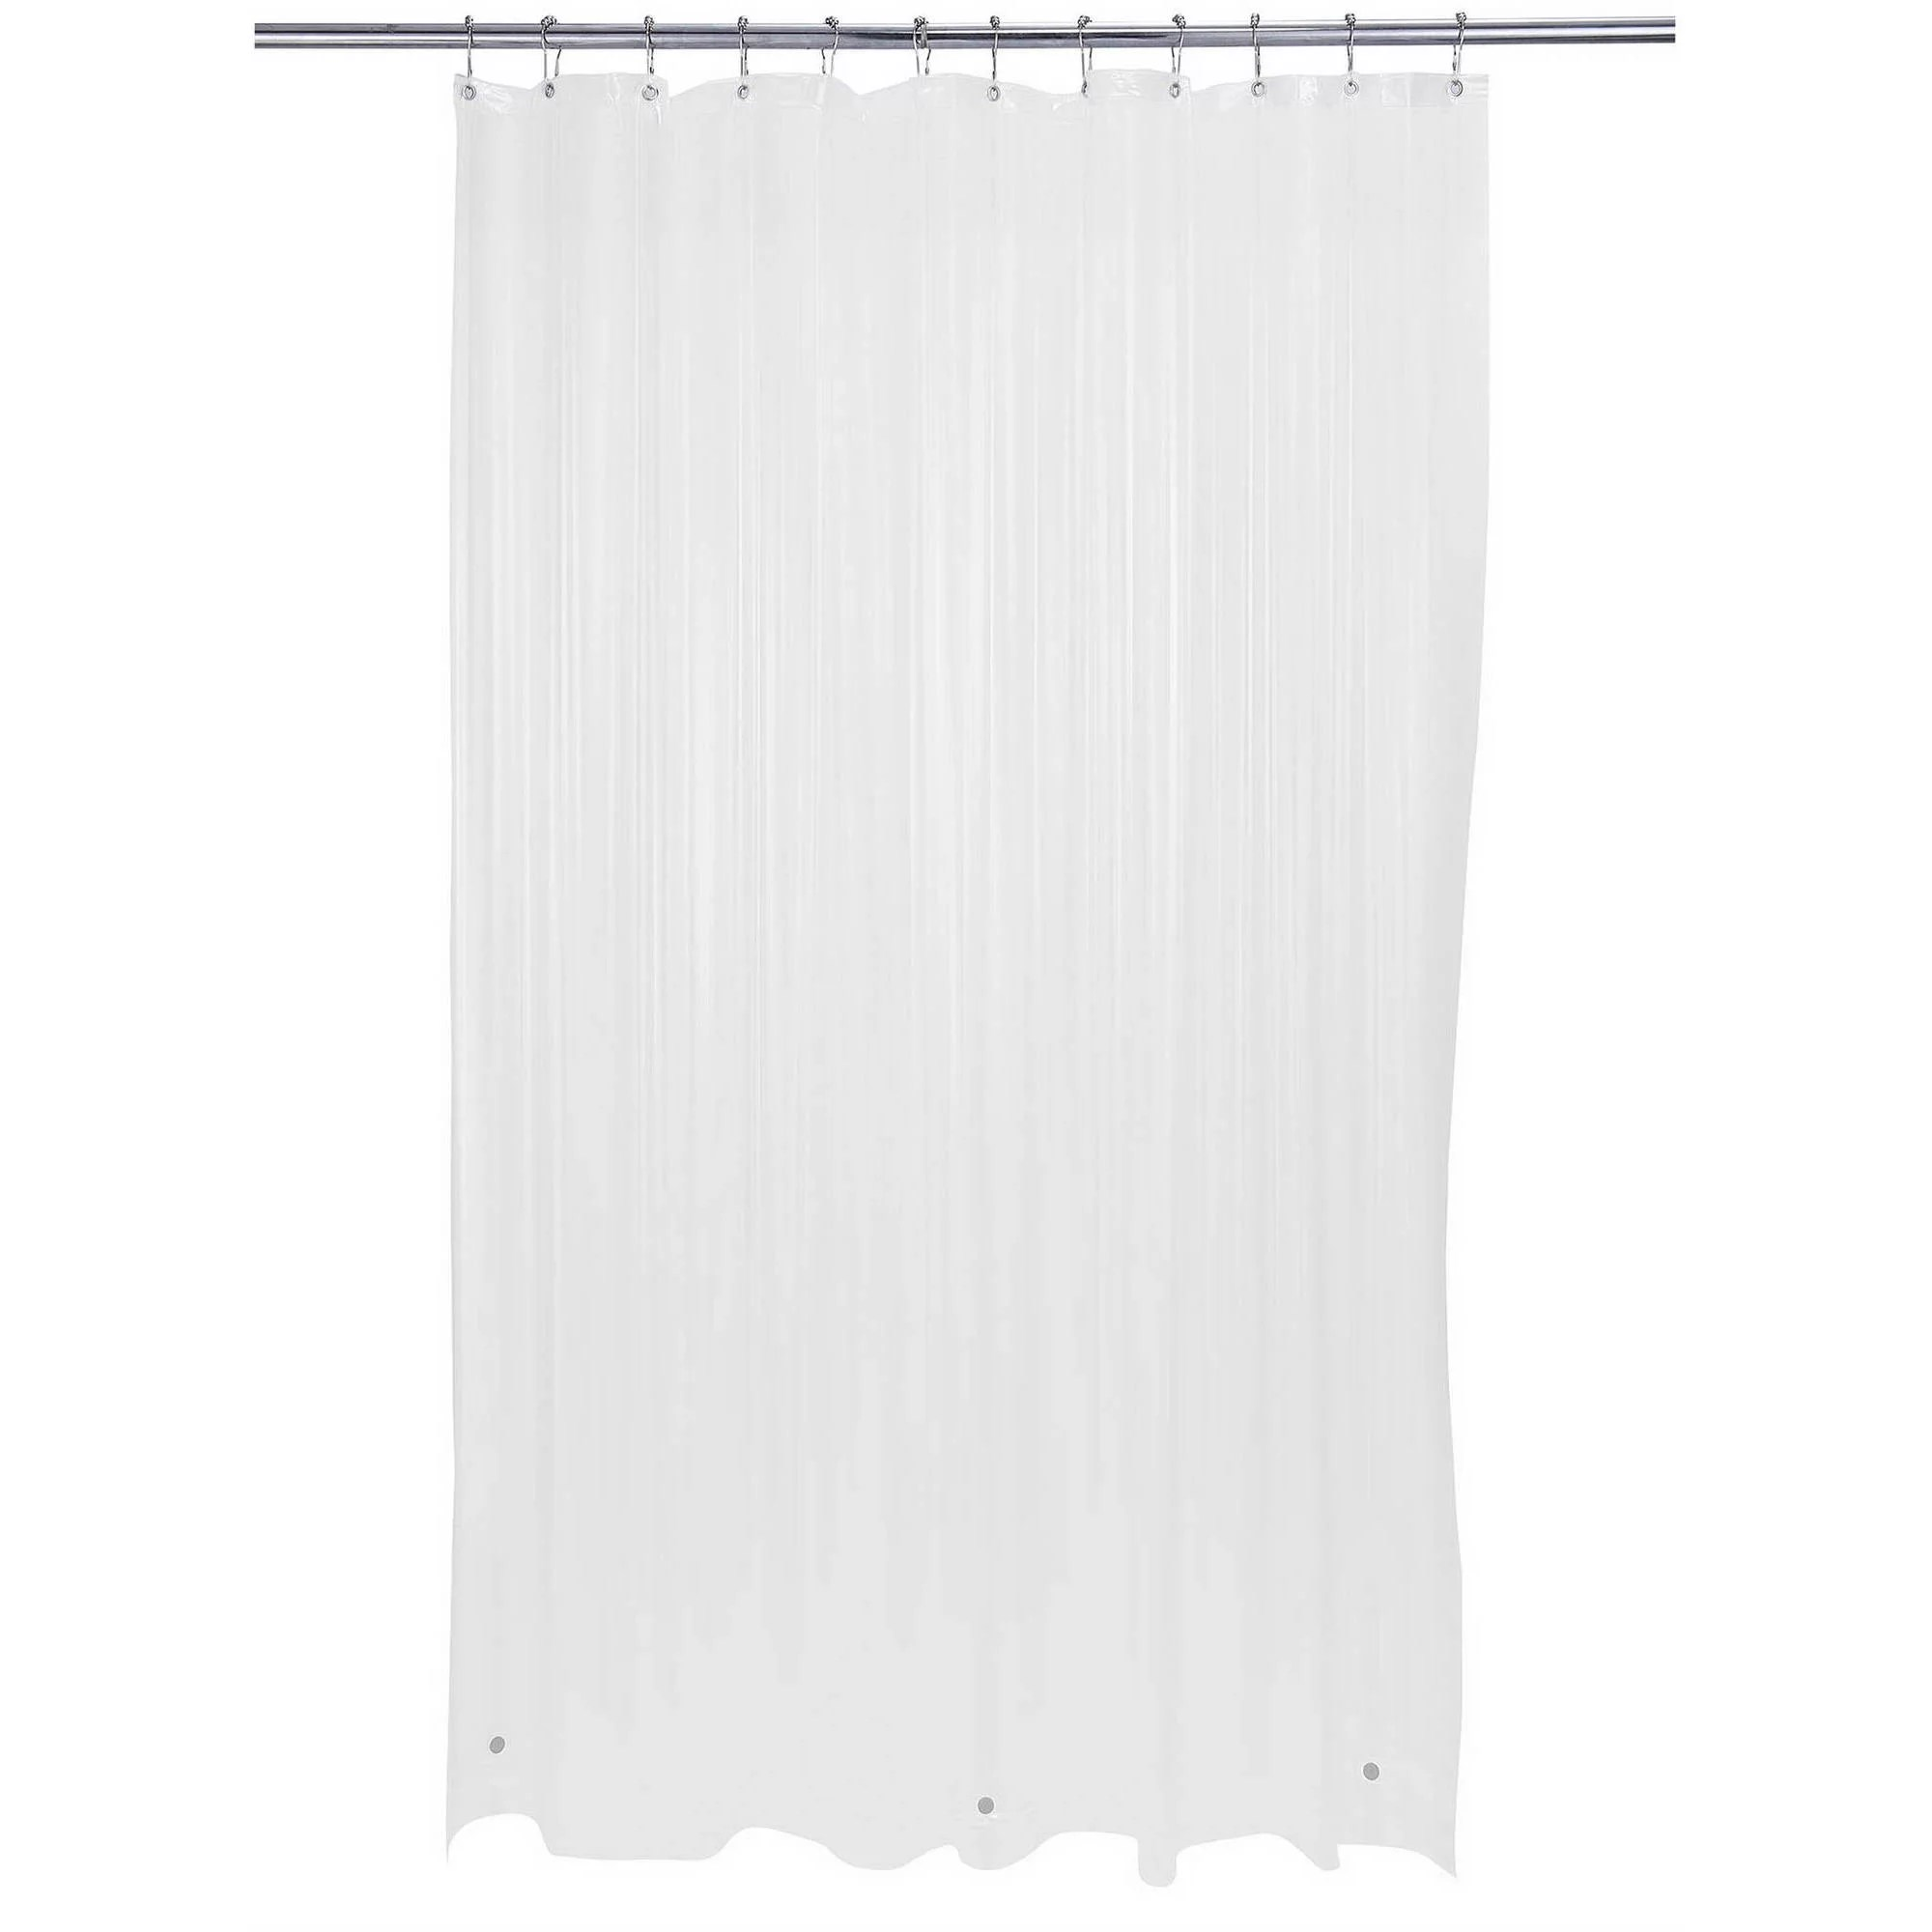 bath bliss shower curtain liner extra long white 72 x 84